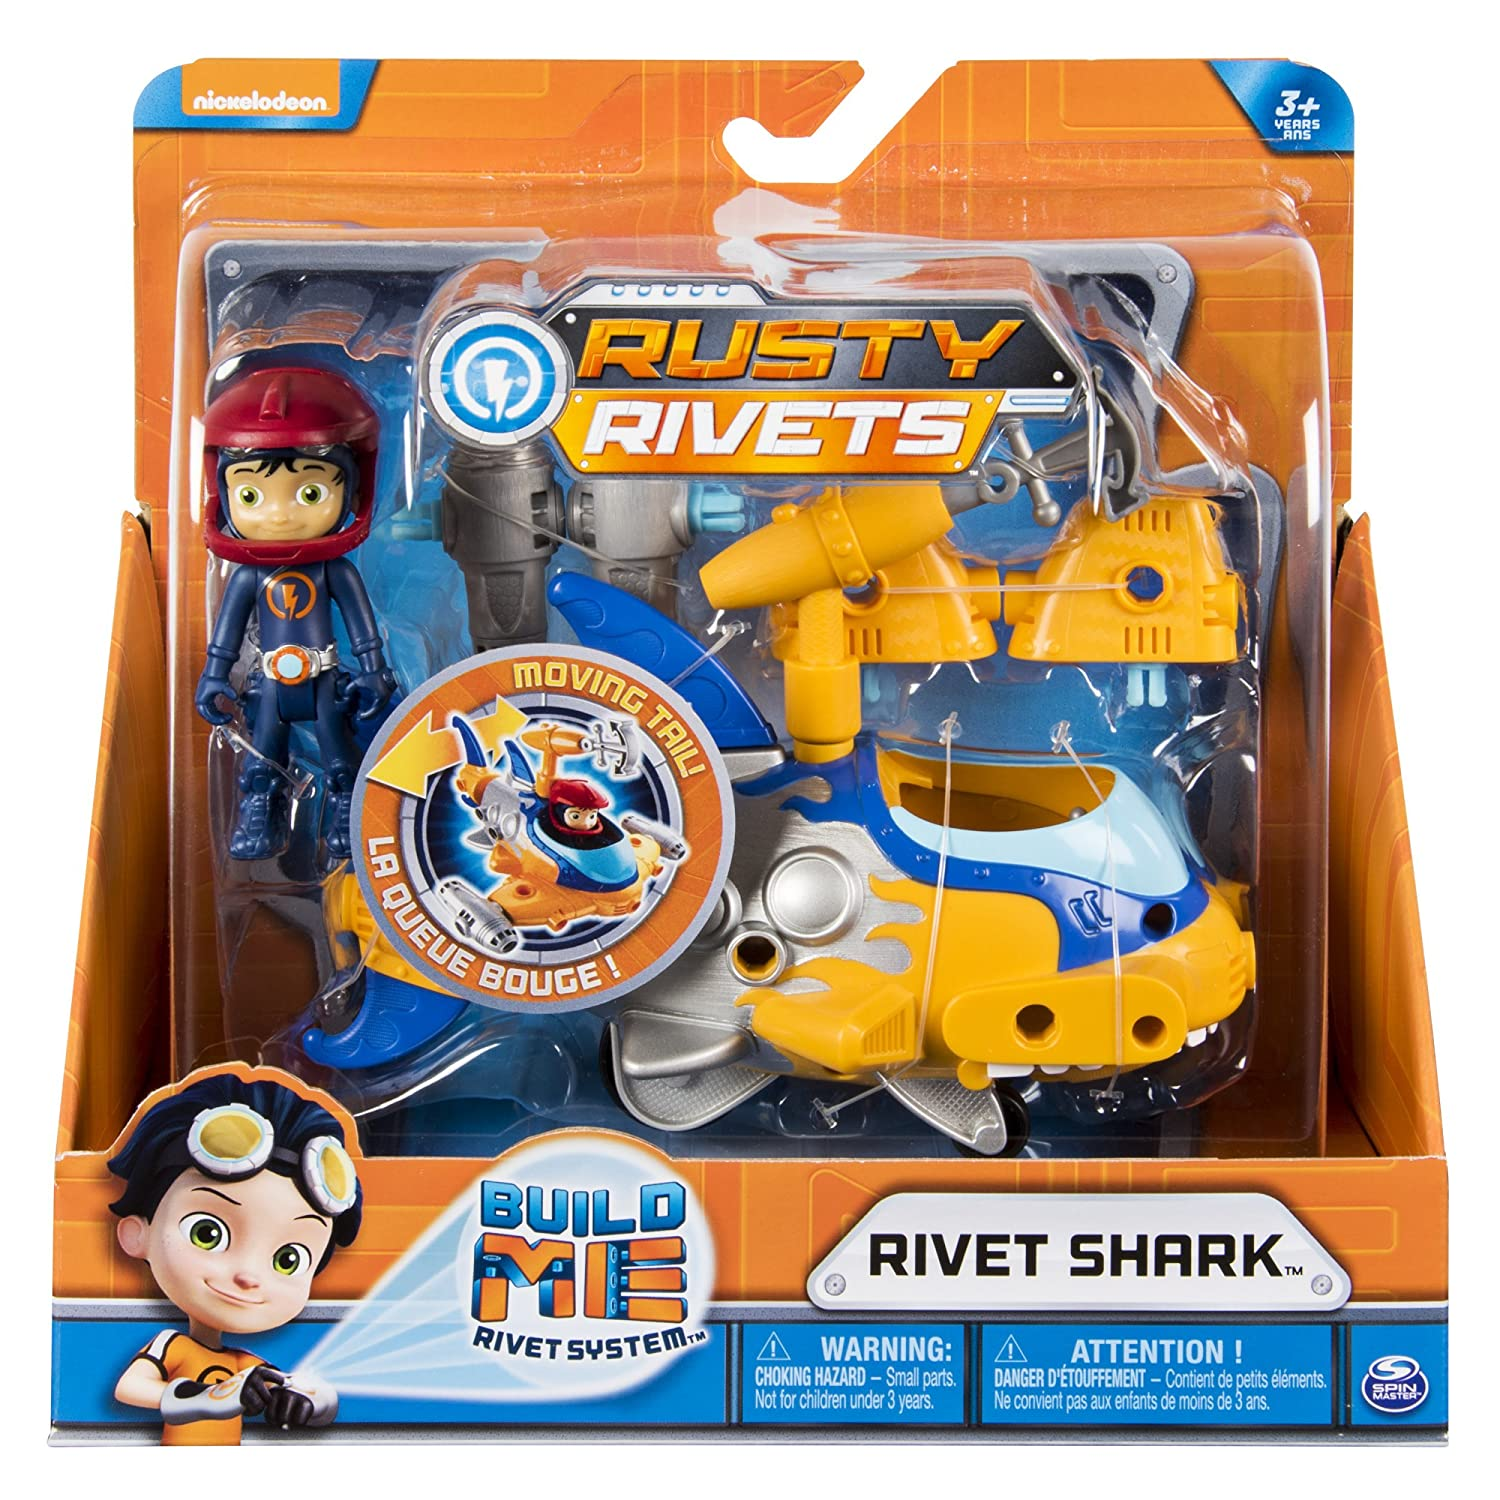 Rusty Rivets 20101269-6046696 Buildable Rivet Shark Vehicle with Figure for Ages 3 and Up